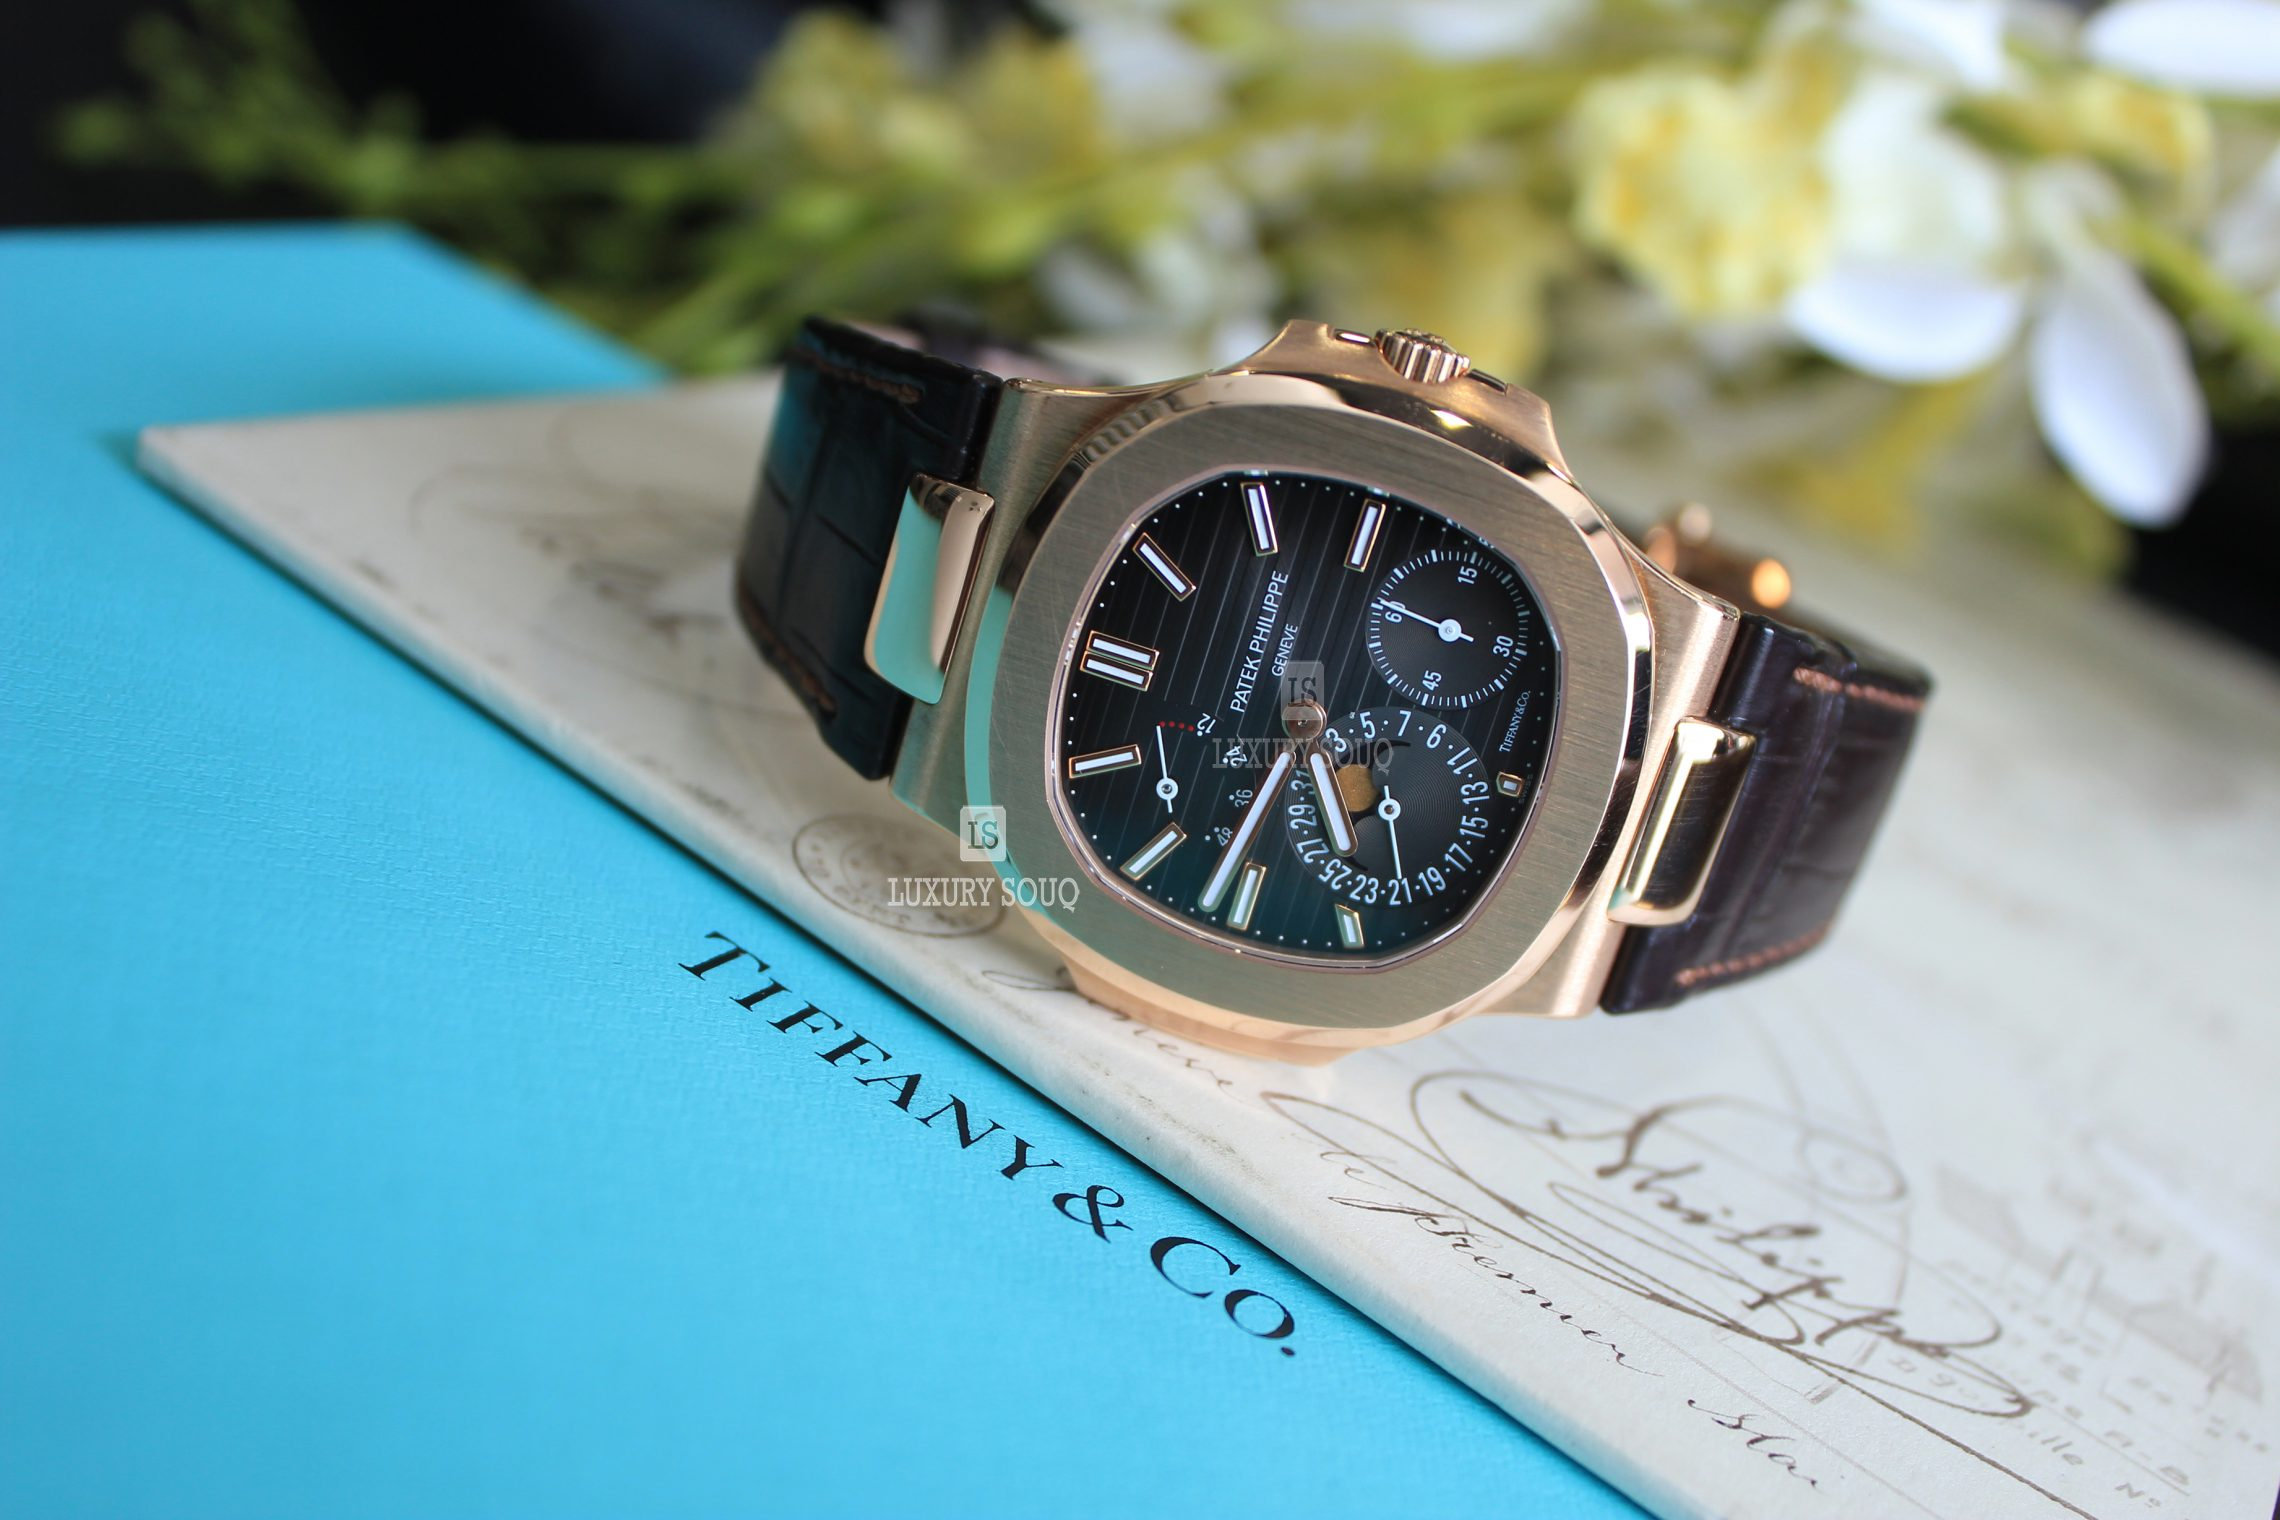 Watch PATEK PHILIPPE Nautilus Moonphase 18k RG Tiffany & CO. for sale For Super Rich